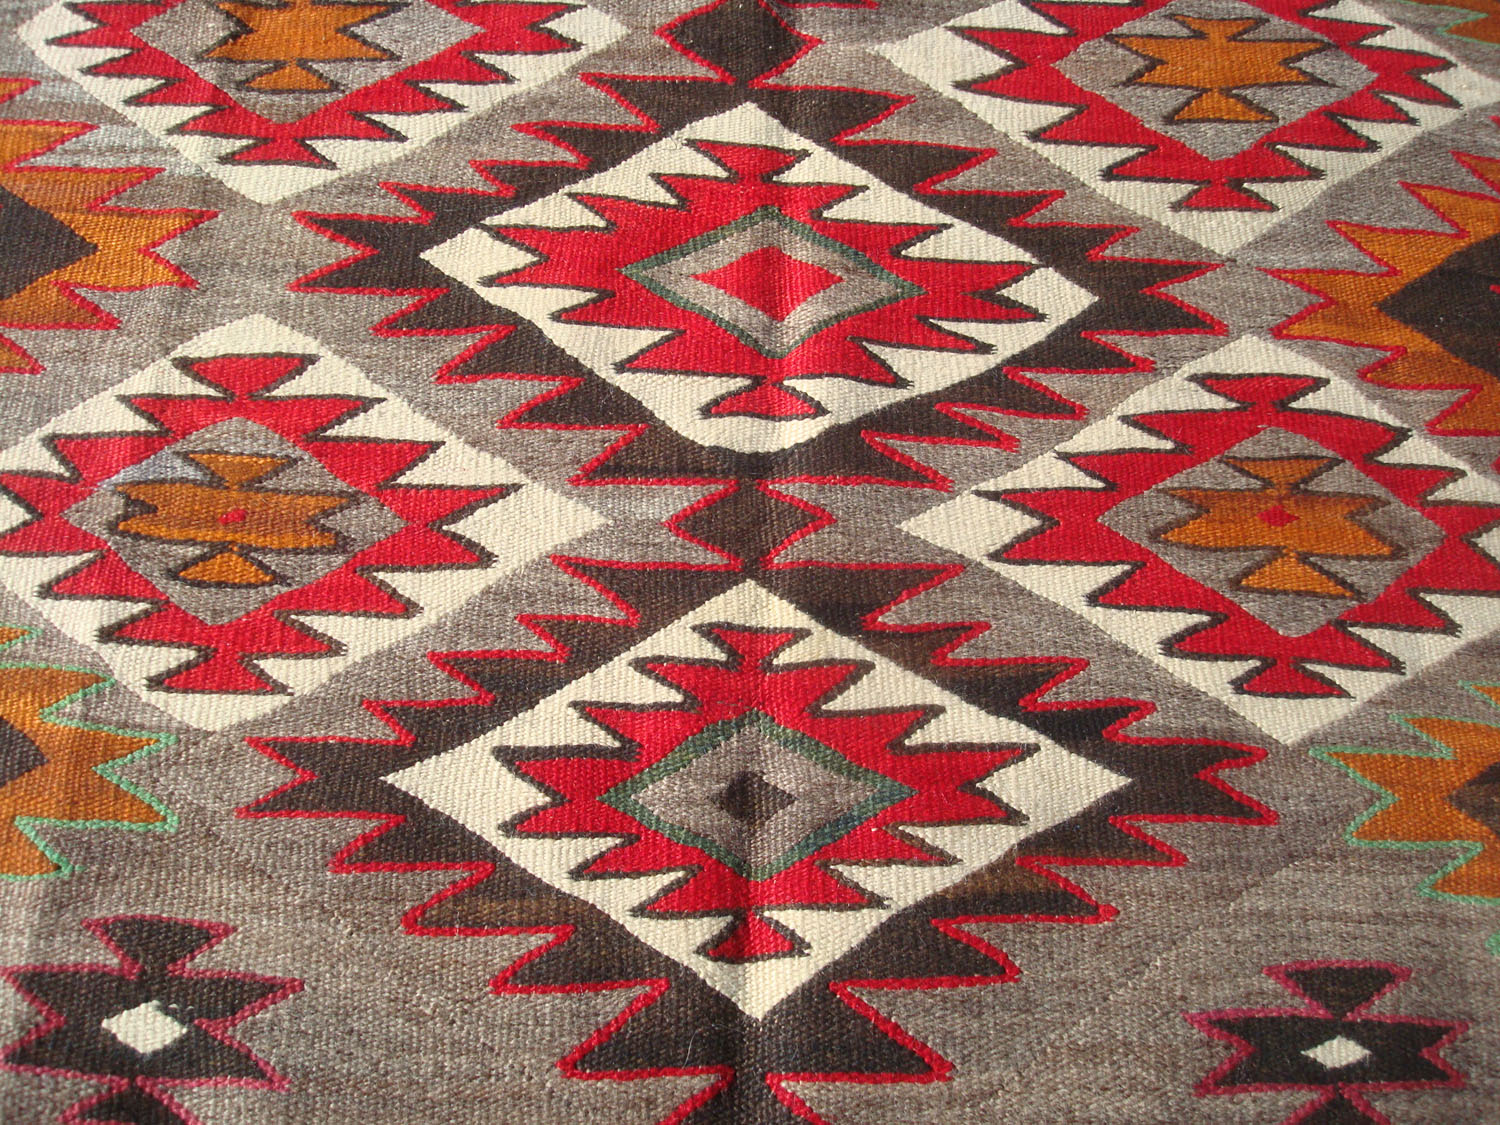 Mexican Red Cross >> Native American Indian and Navajo Rugs and Textiles at ...